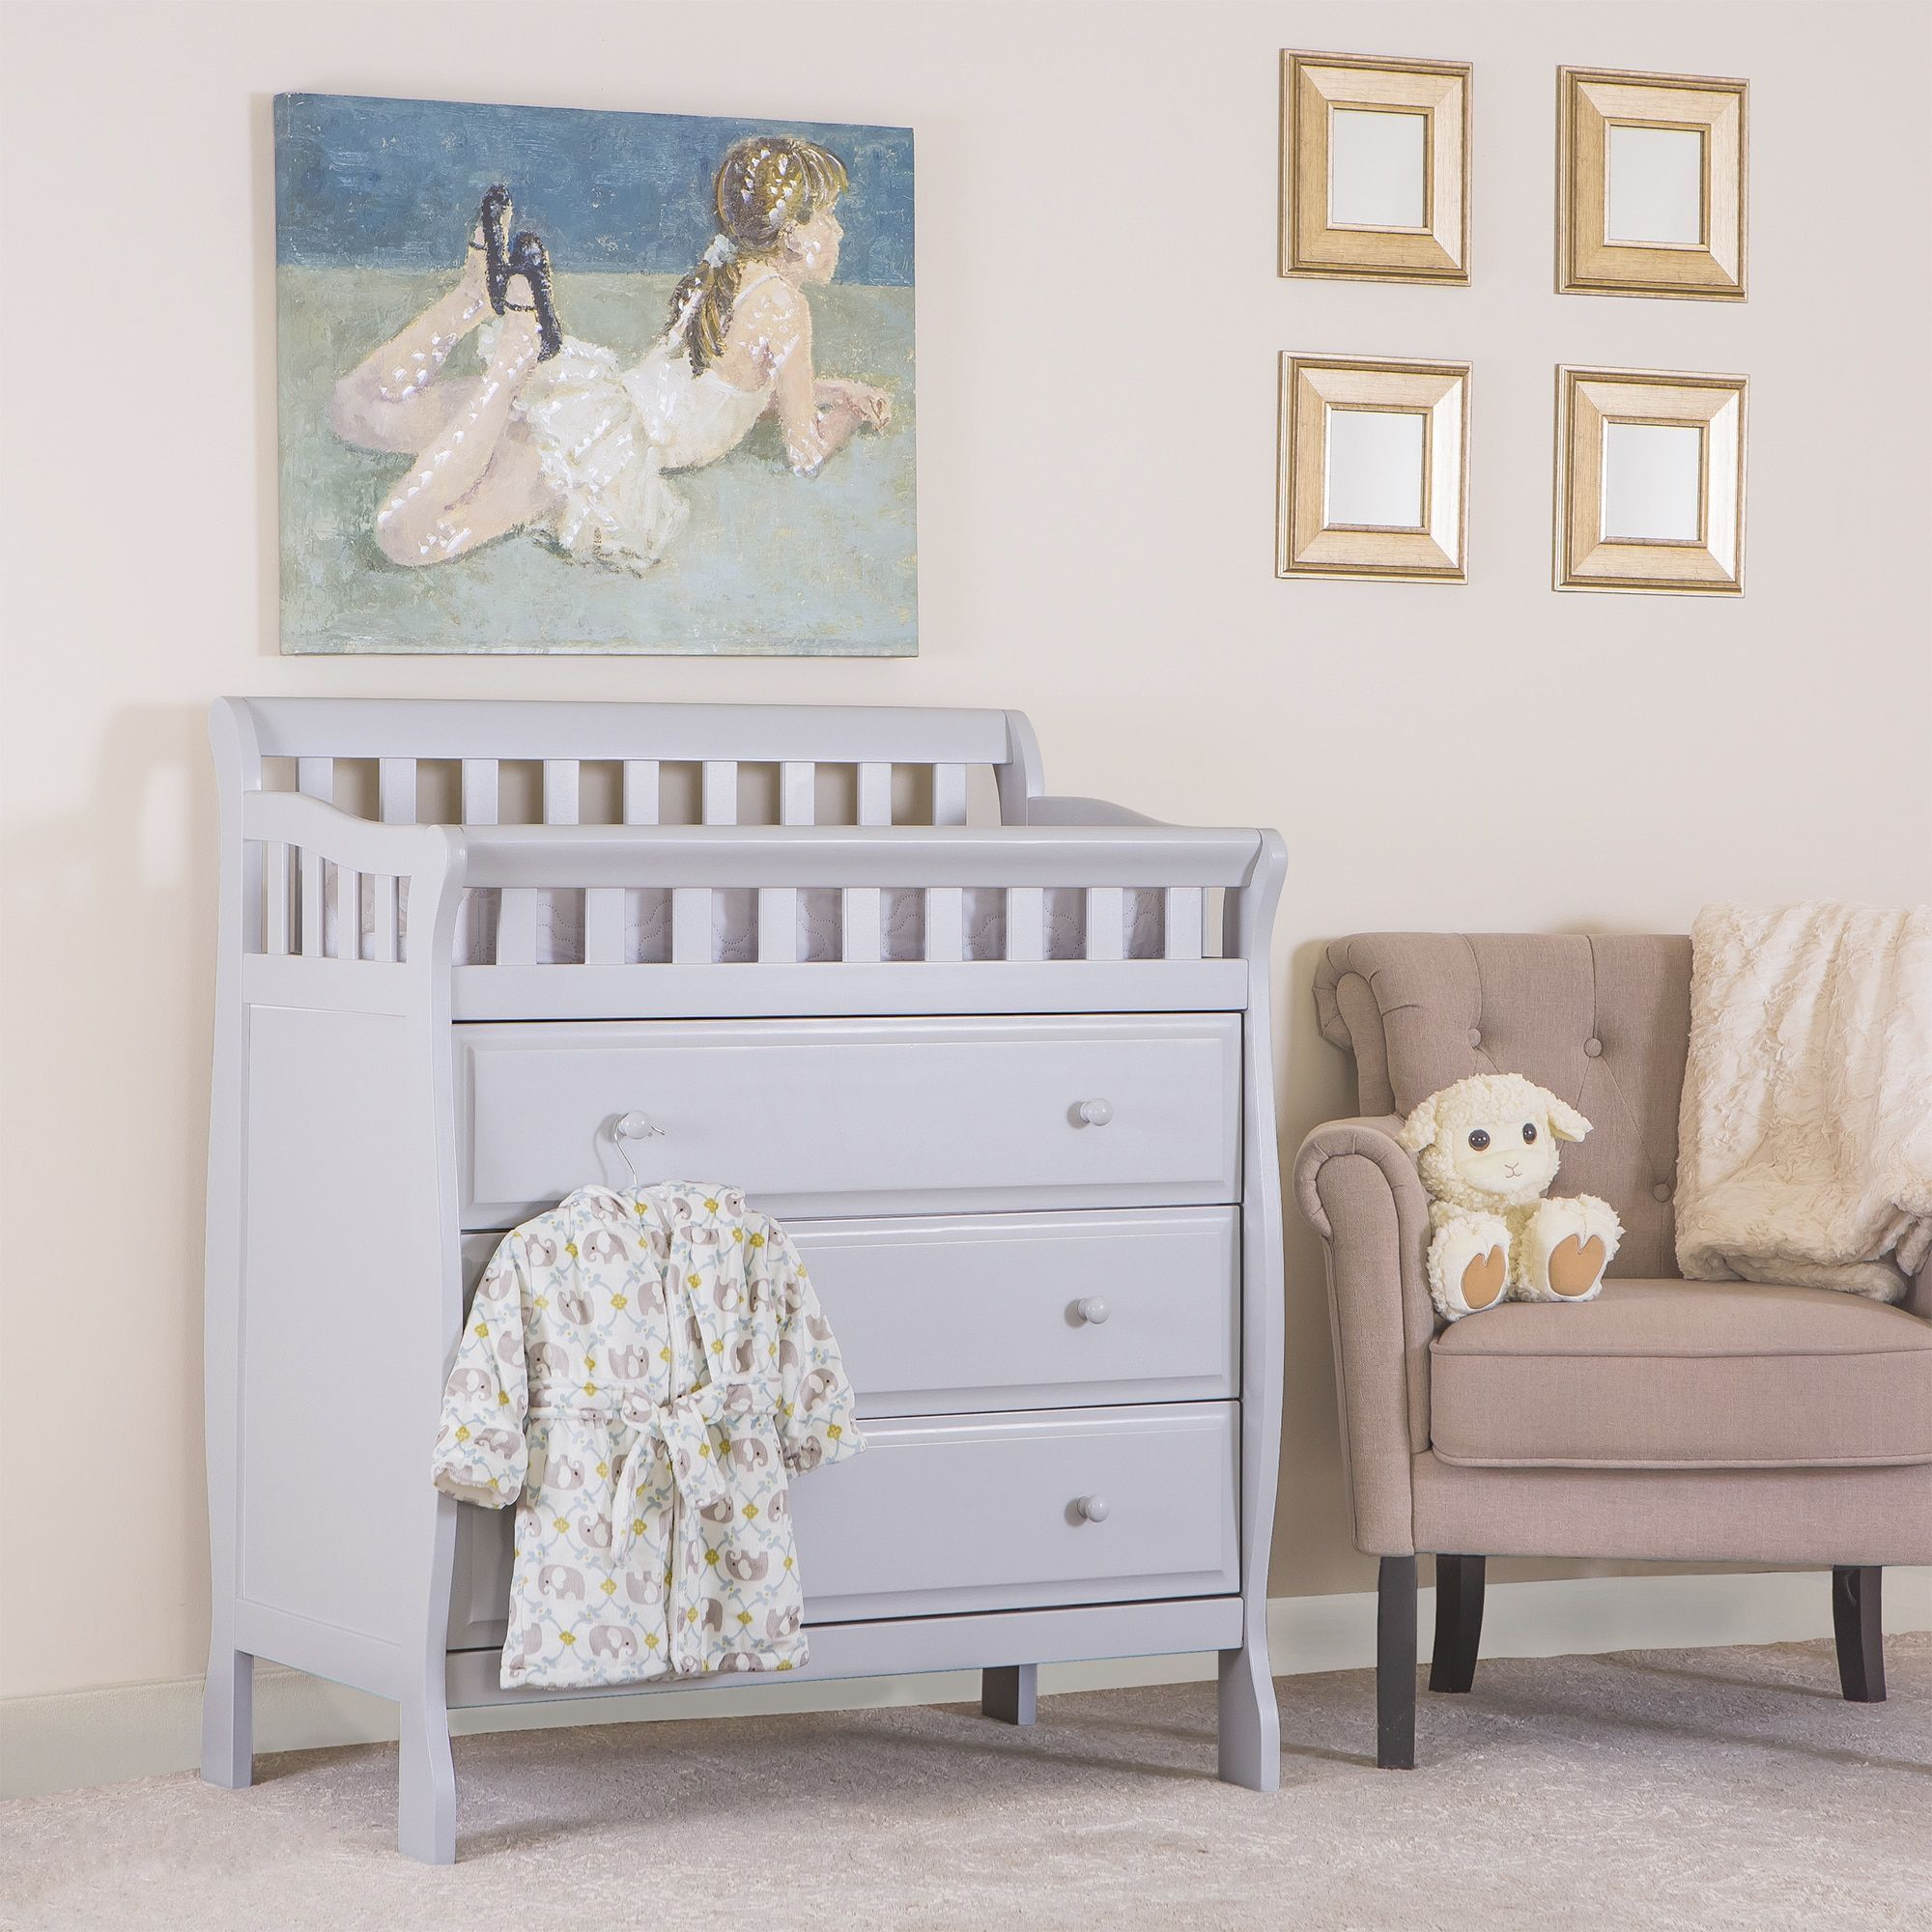 changing product overstock home garden children dresser signature shipping grey delta today drawer epic free table